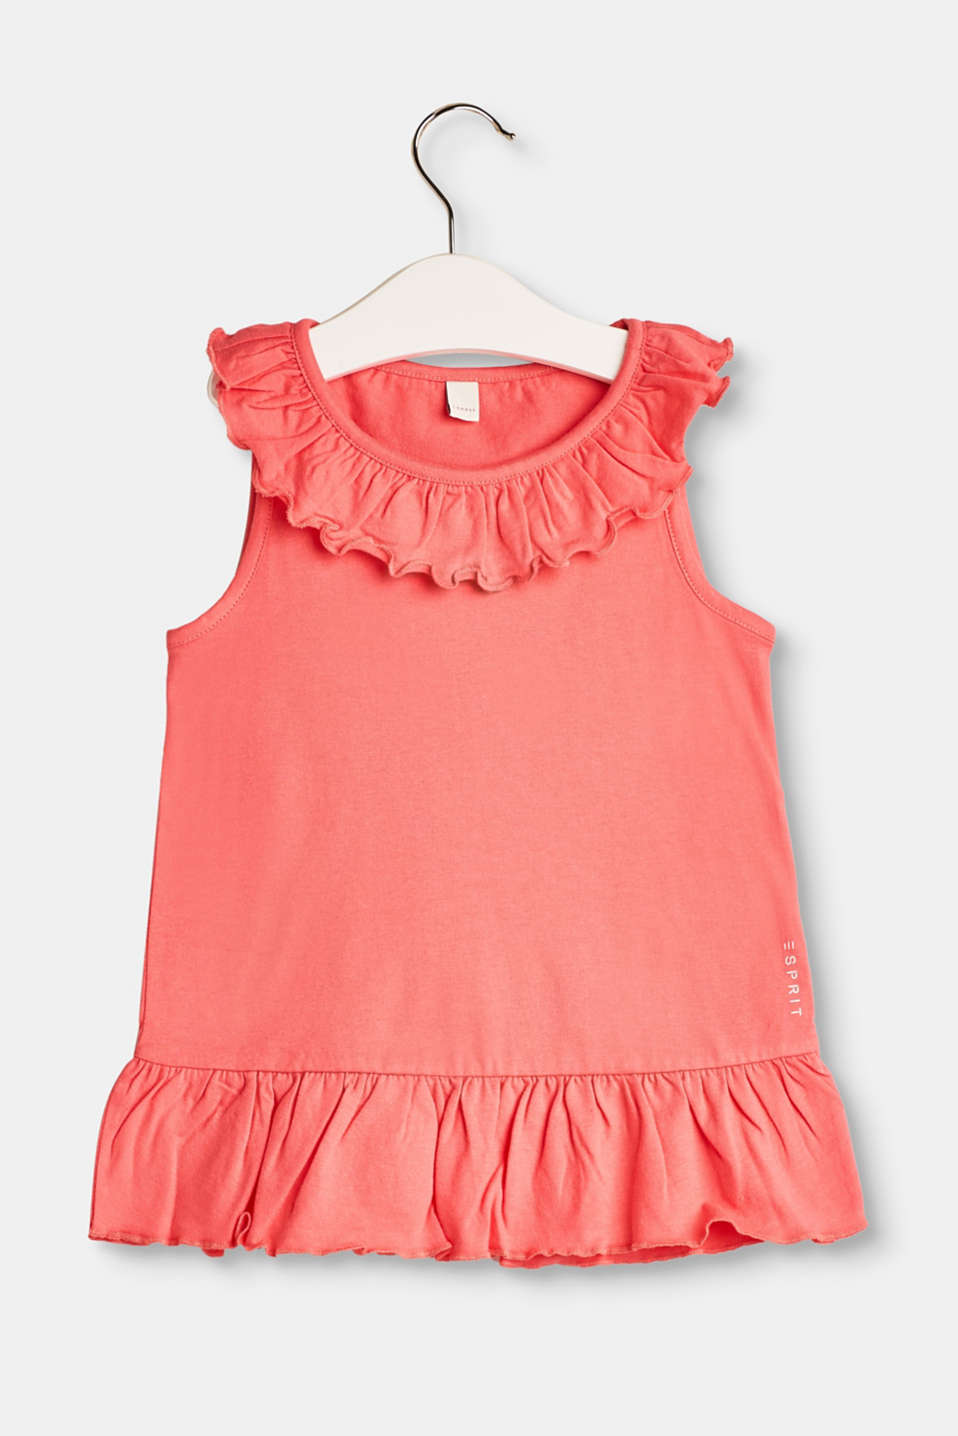 Esprit - Tank top with decorative frills, 100% cotton